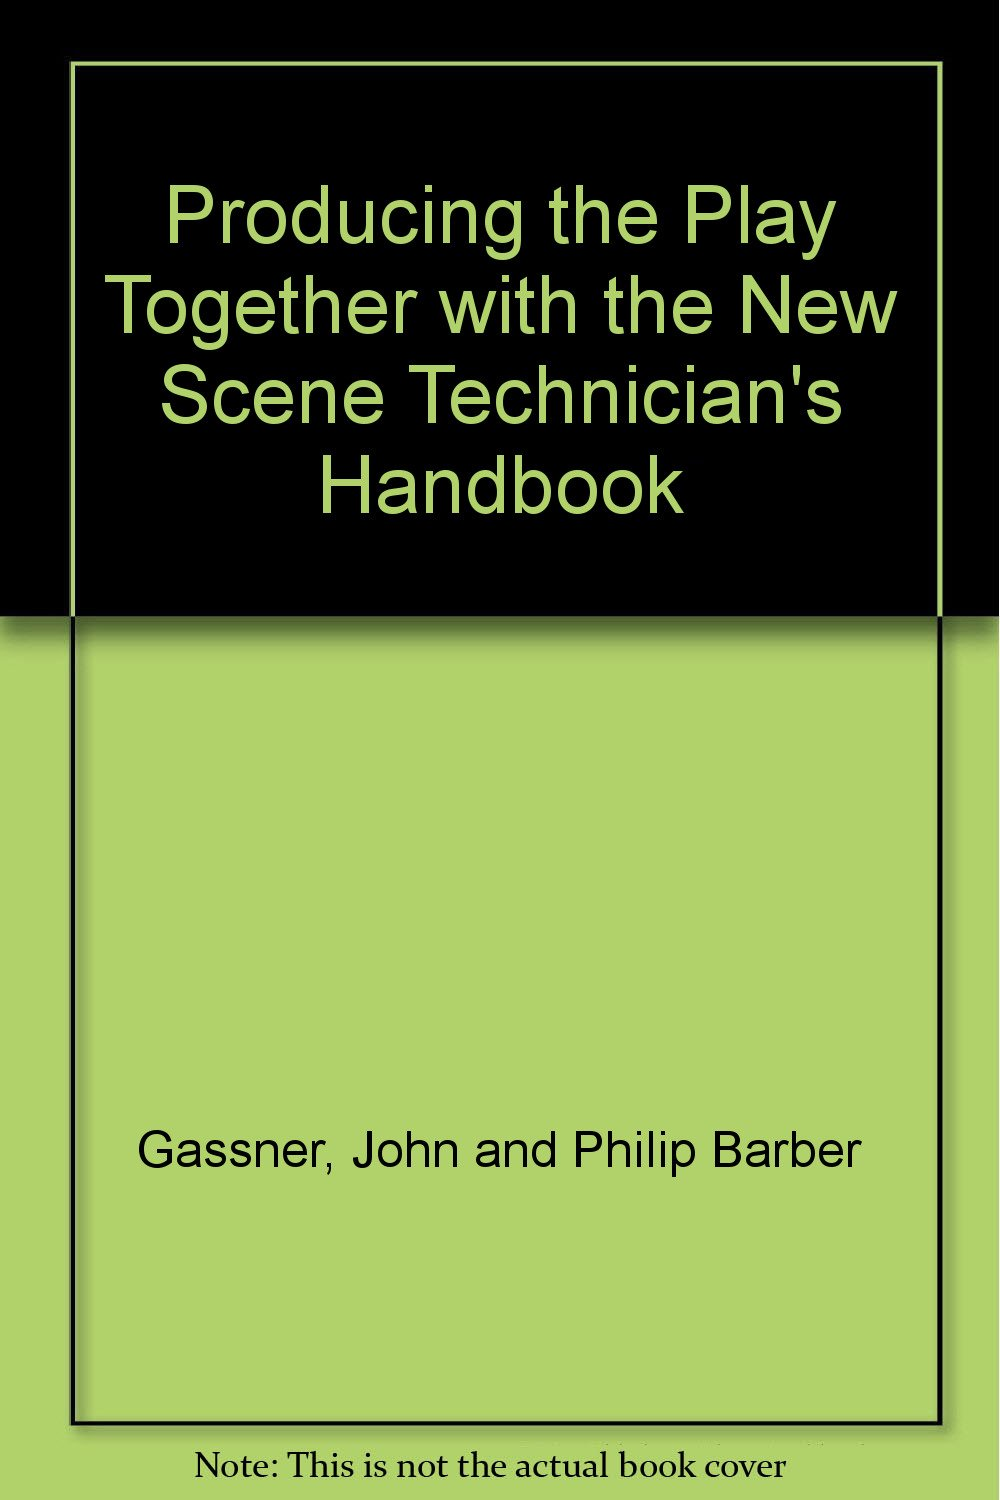 Producing the Play Together with the New Scene Technician's Handbook